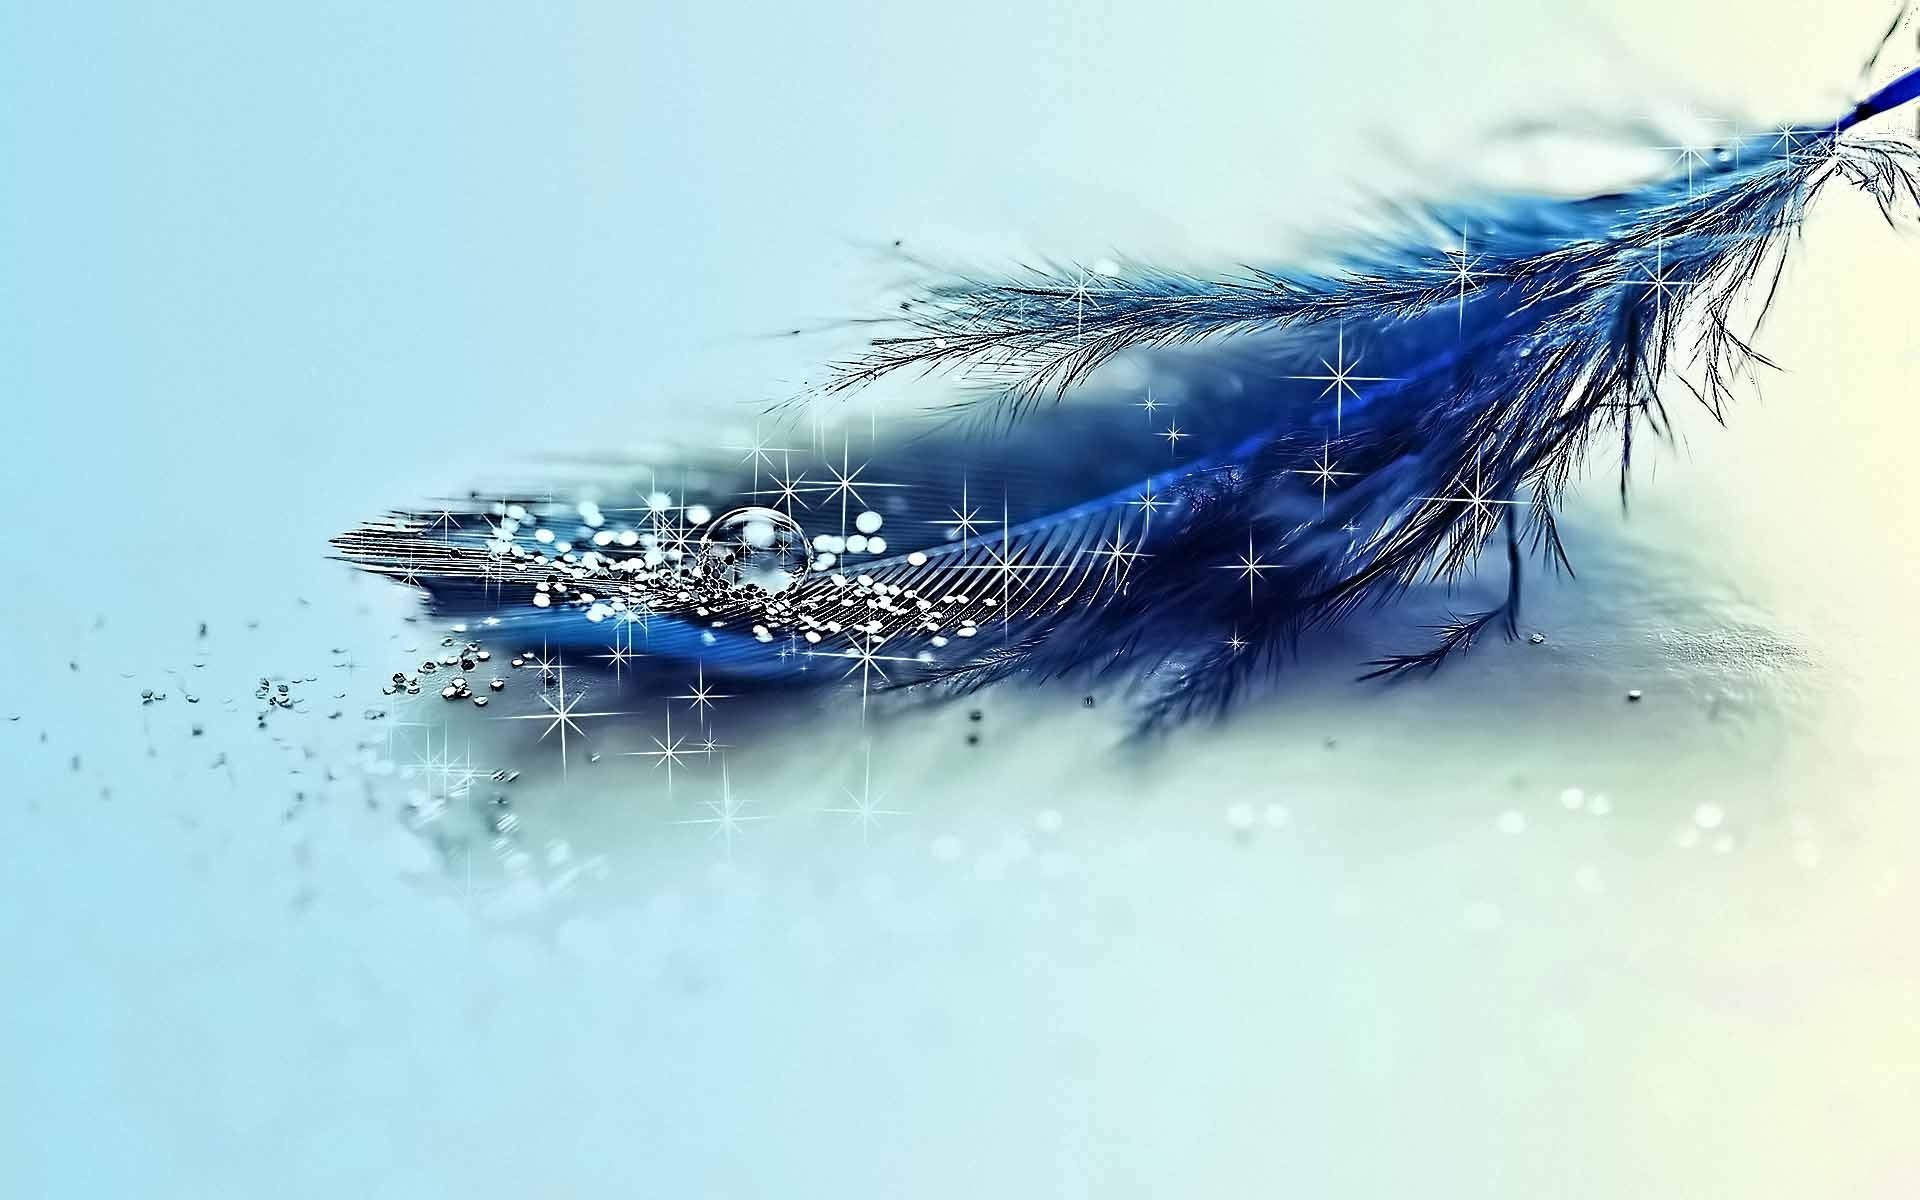 Mor Pankh Hd Wallpaper: Wallpaper With Feathers